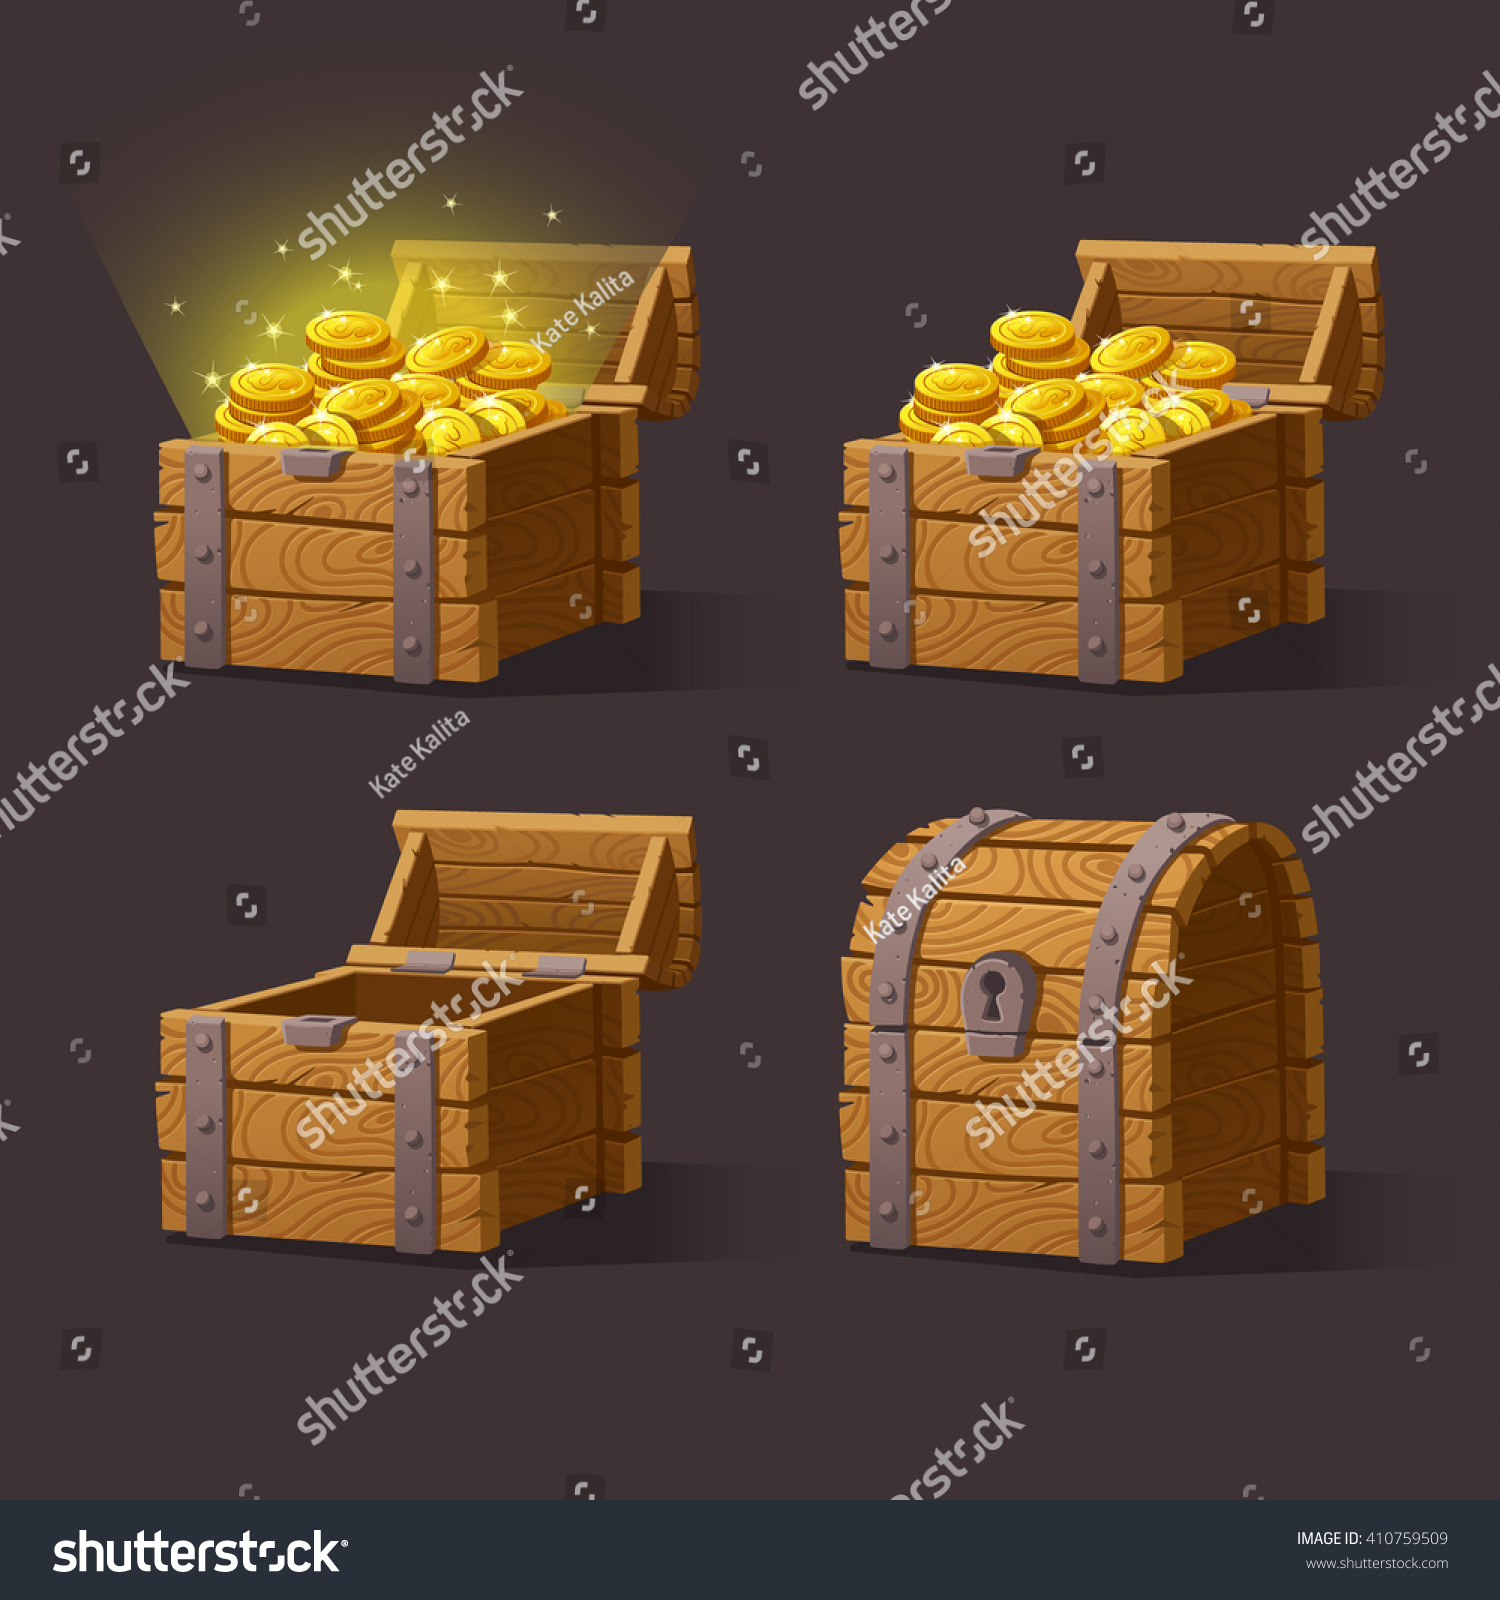 wooden chest set game interfacevector illustration stock vector